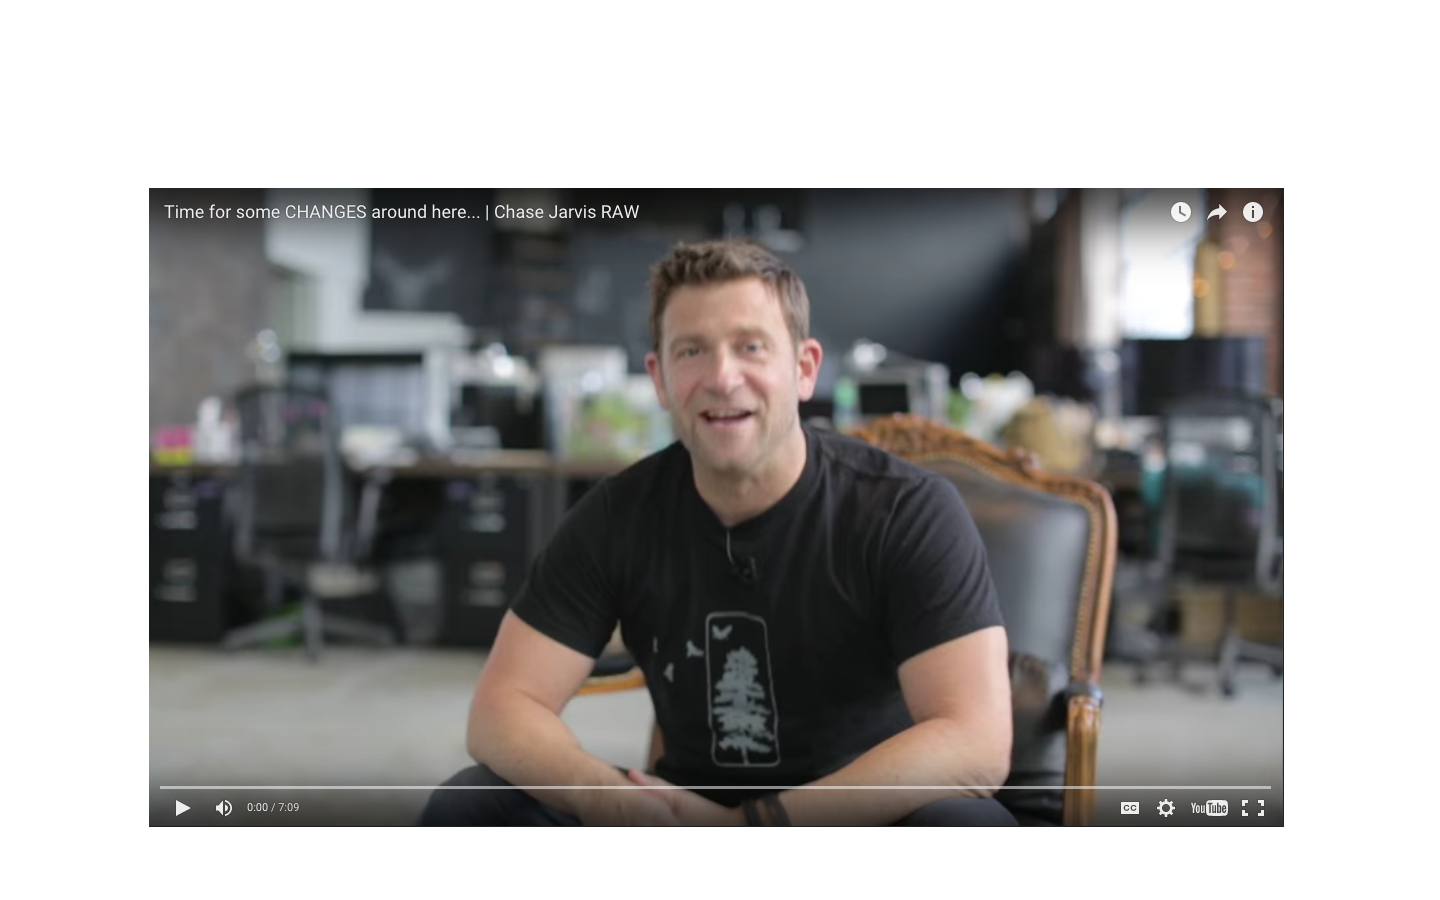 Tips on Creating Good Habits     Check out this short video by world-renowned photographer Chase Jarvis to get some tips about creating good habits in the new year.